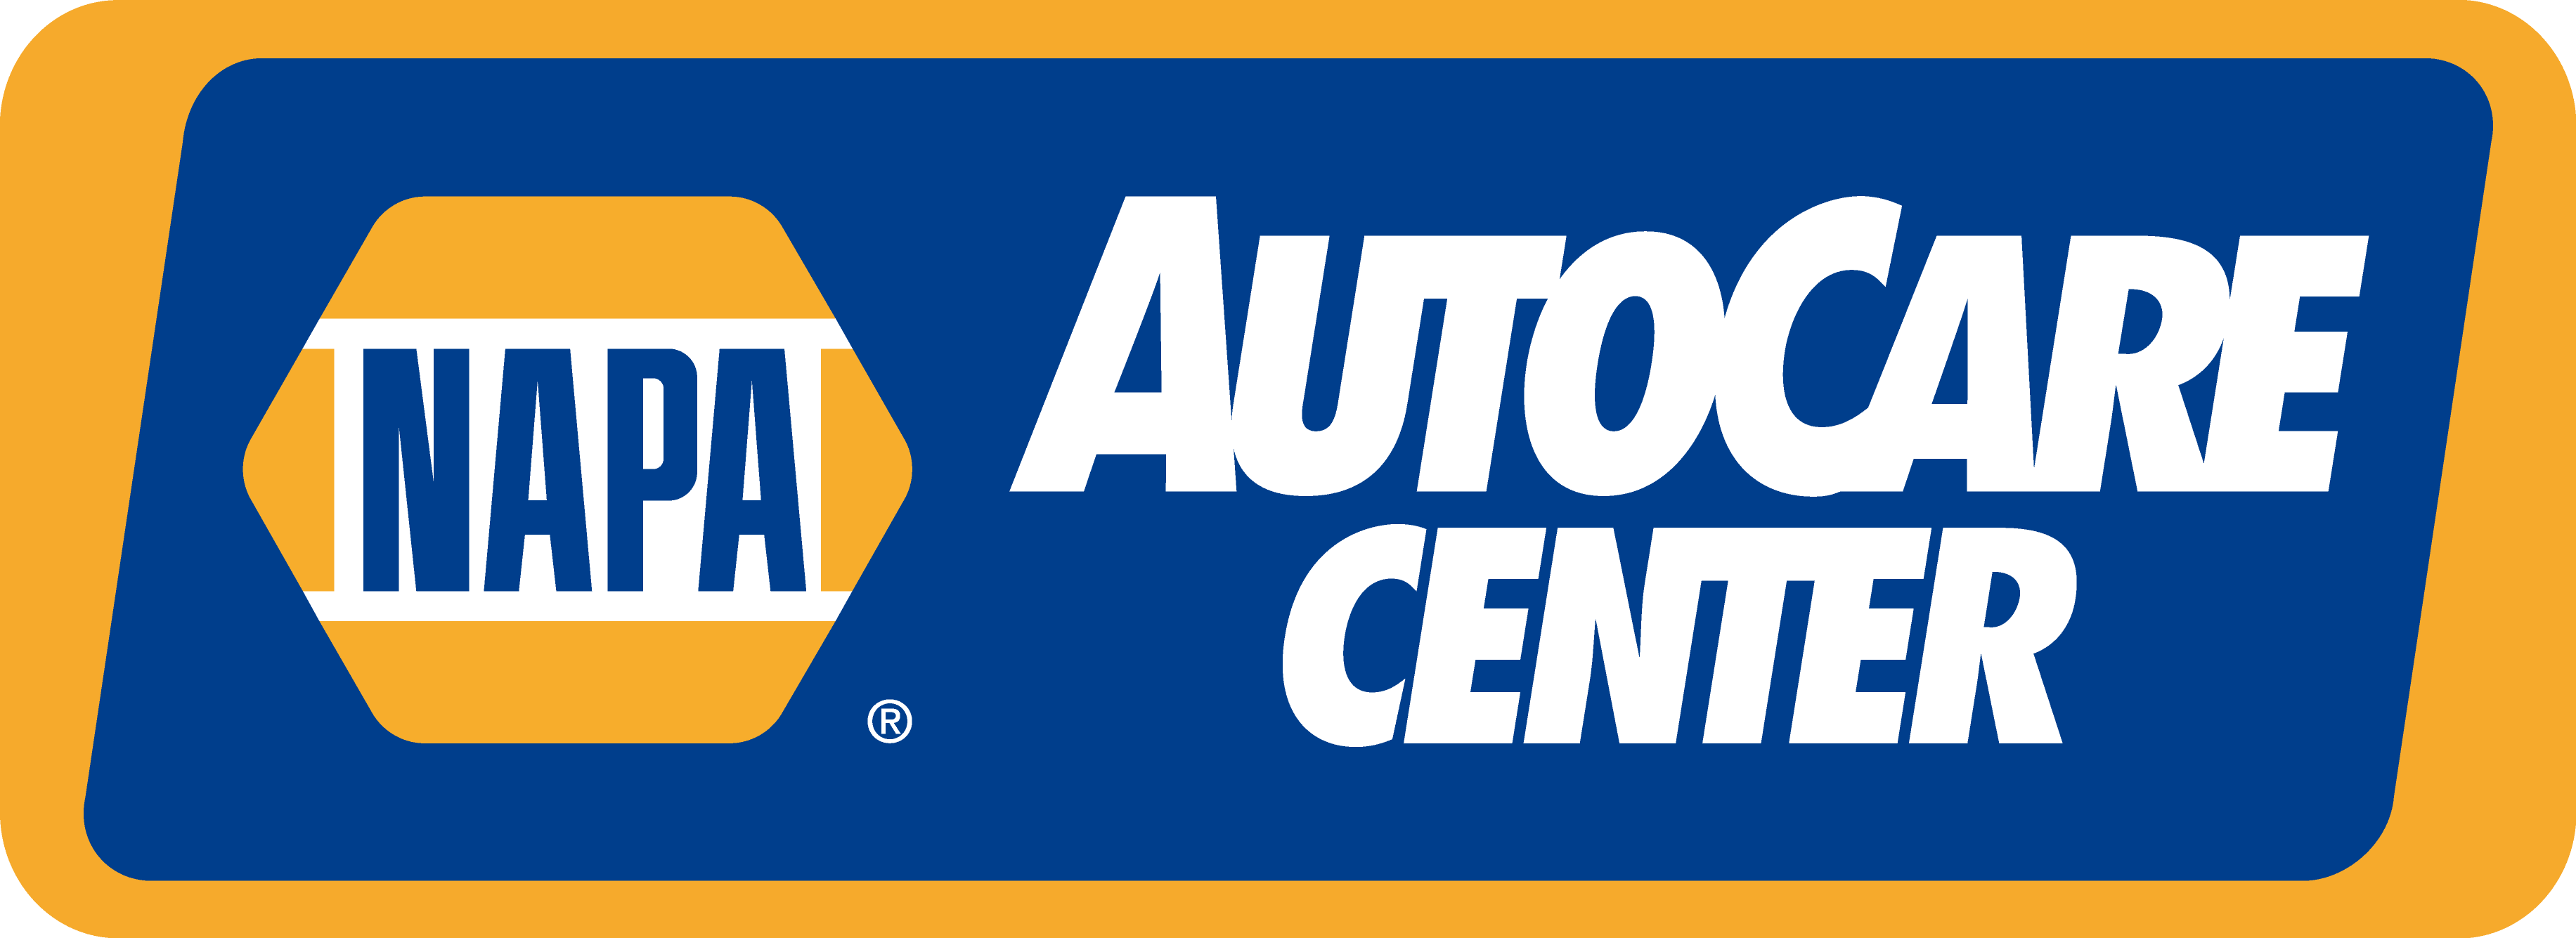 NAPA Auto Care Center, Can-am Motor Service, Tampa, FL, 33612